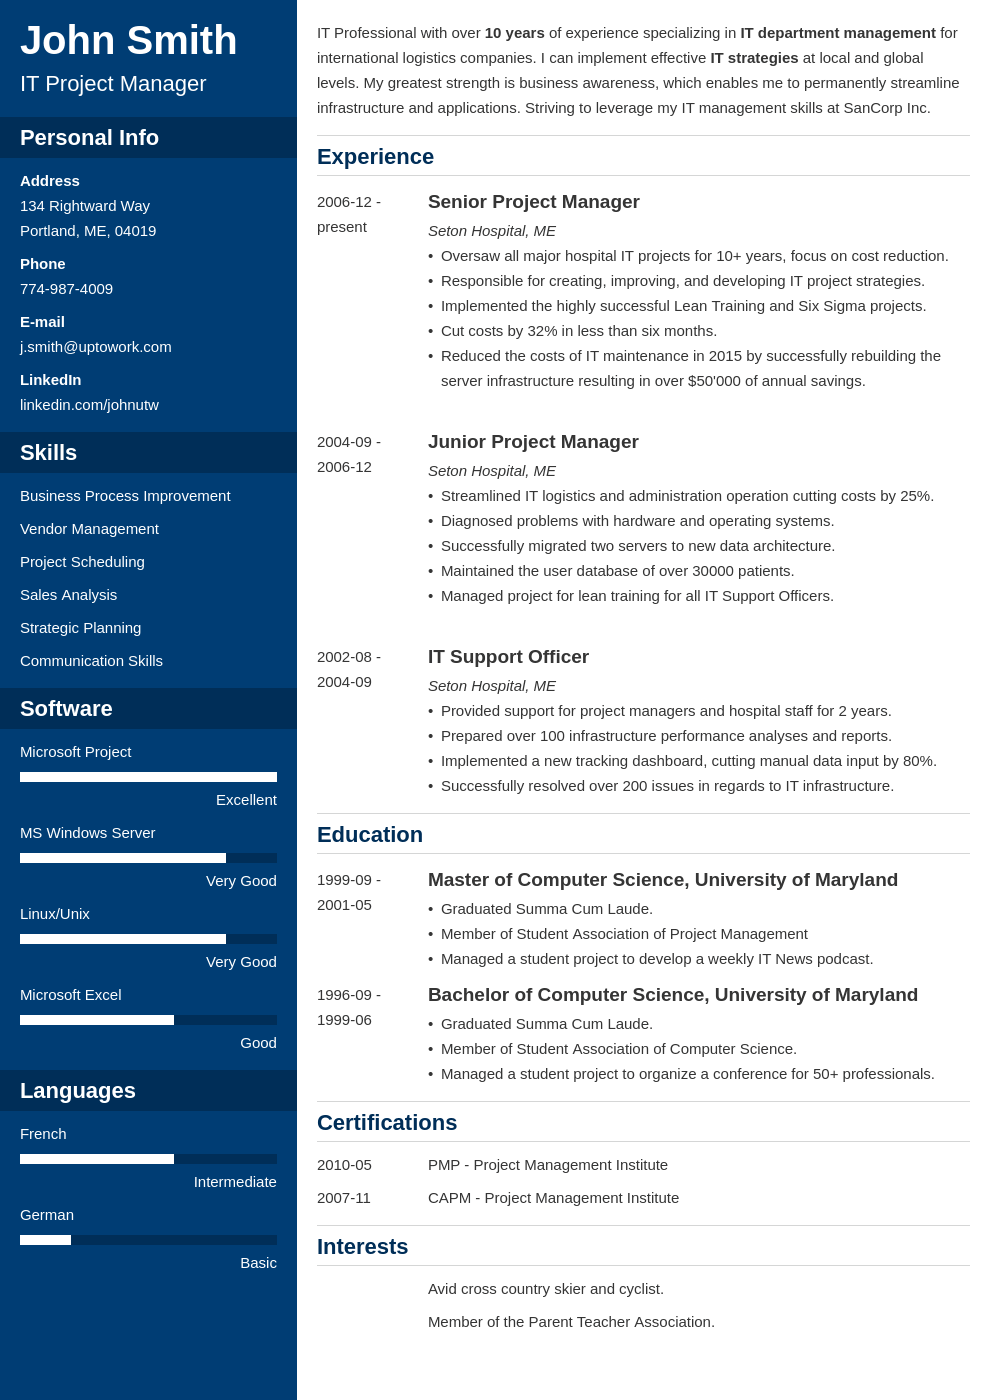 download resume builder - Villa-chems.com